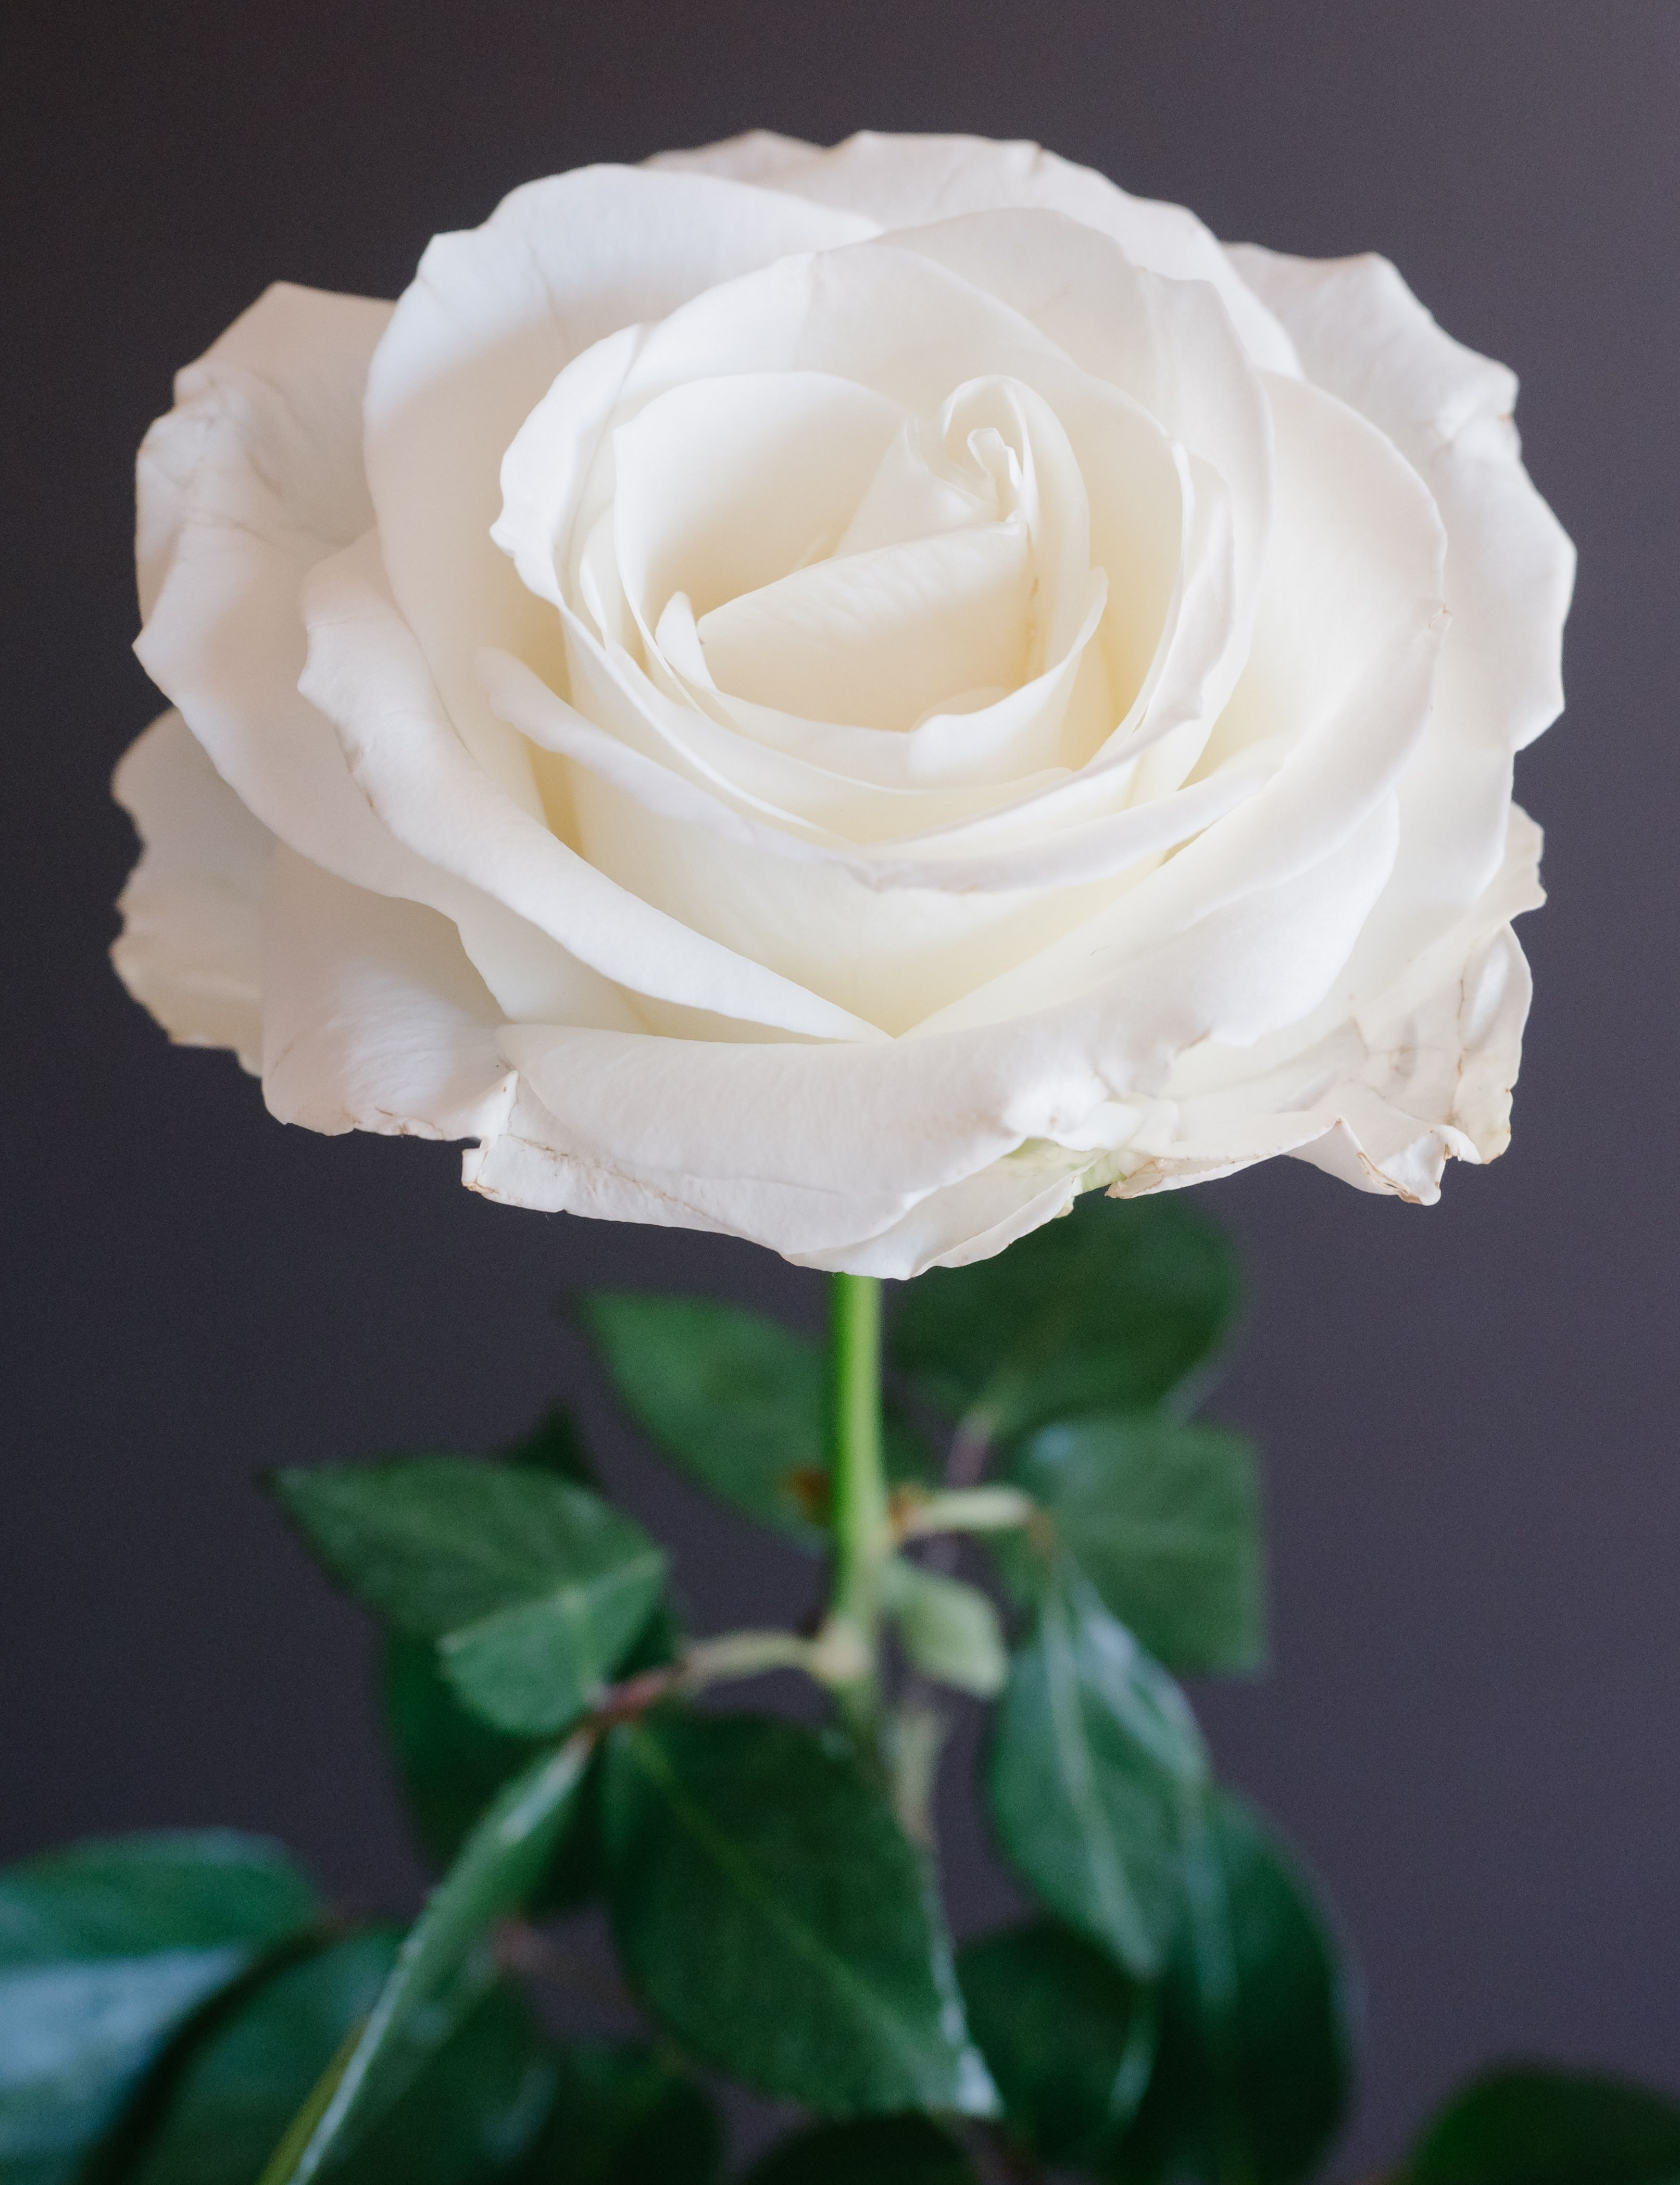 Playa Blanca Rose- these have a very large bloom size and look ...